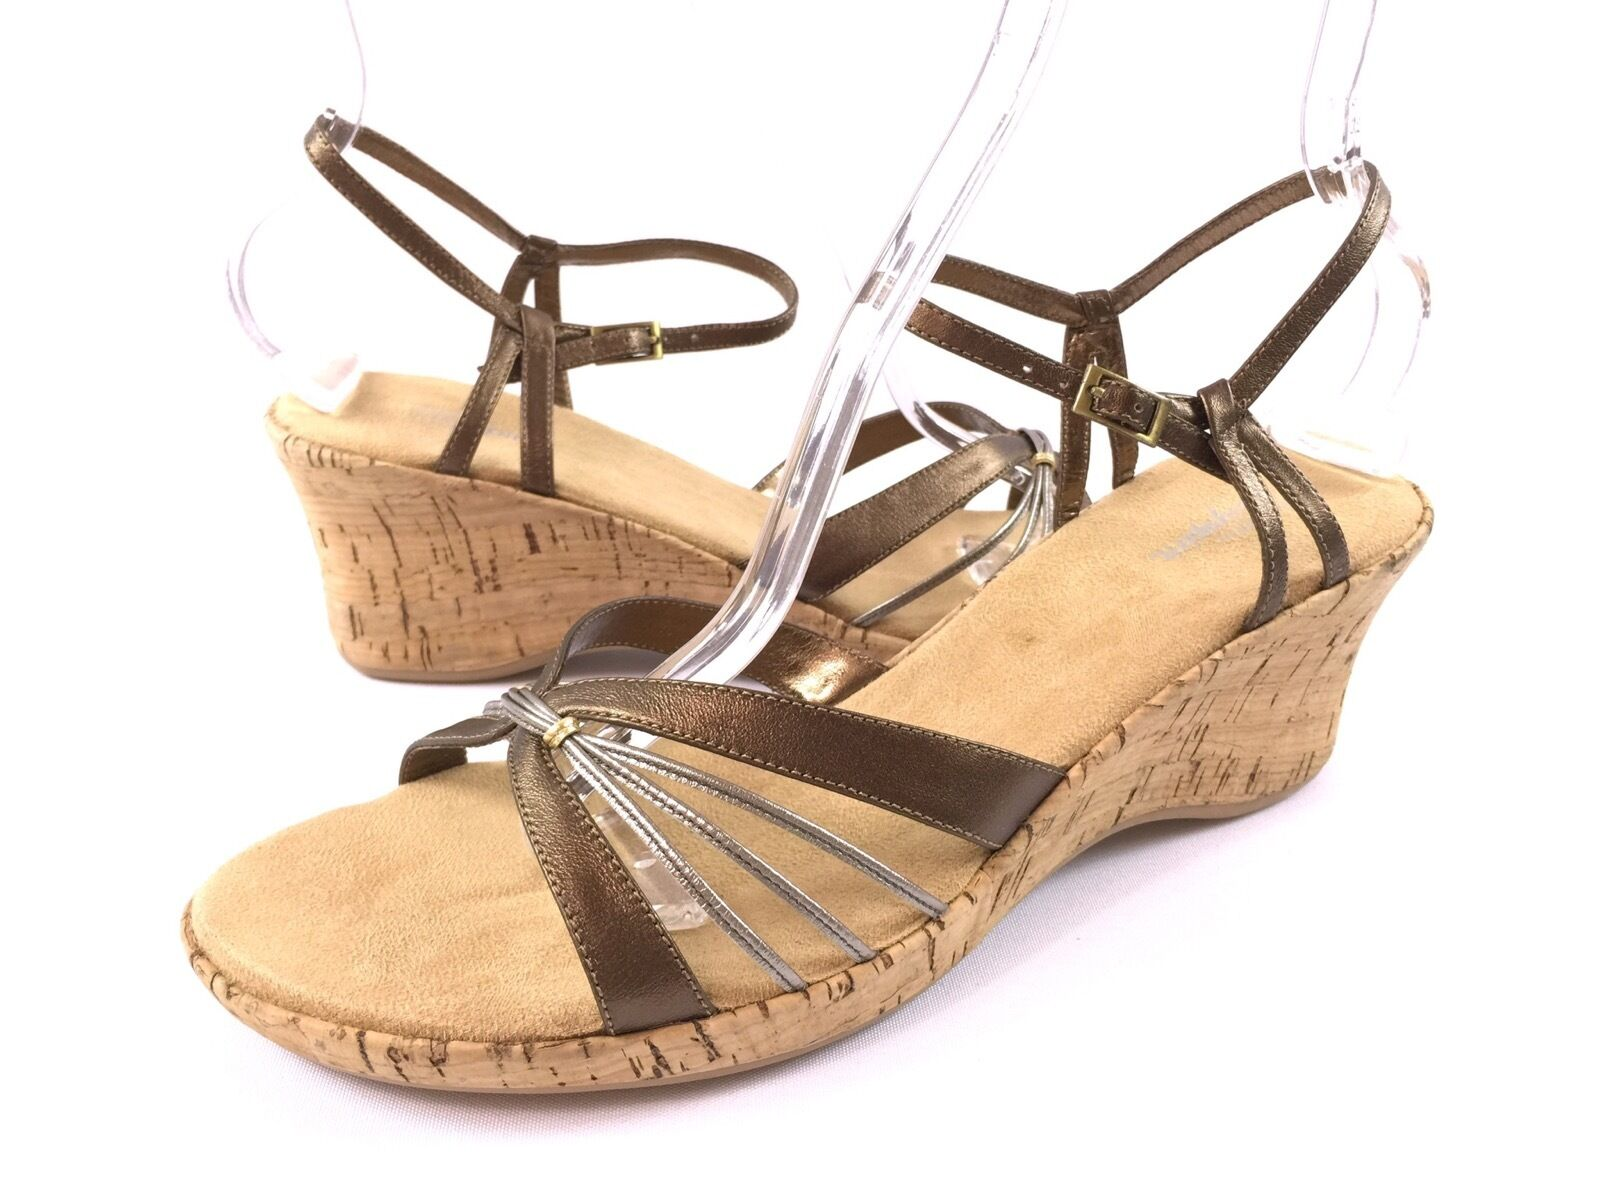 Easy Spirit Womens 10M Bronze Thing Strappy Leather Cork Wedge Sandals shoes